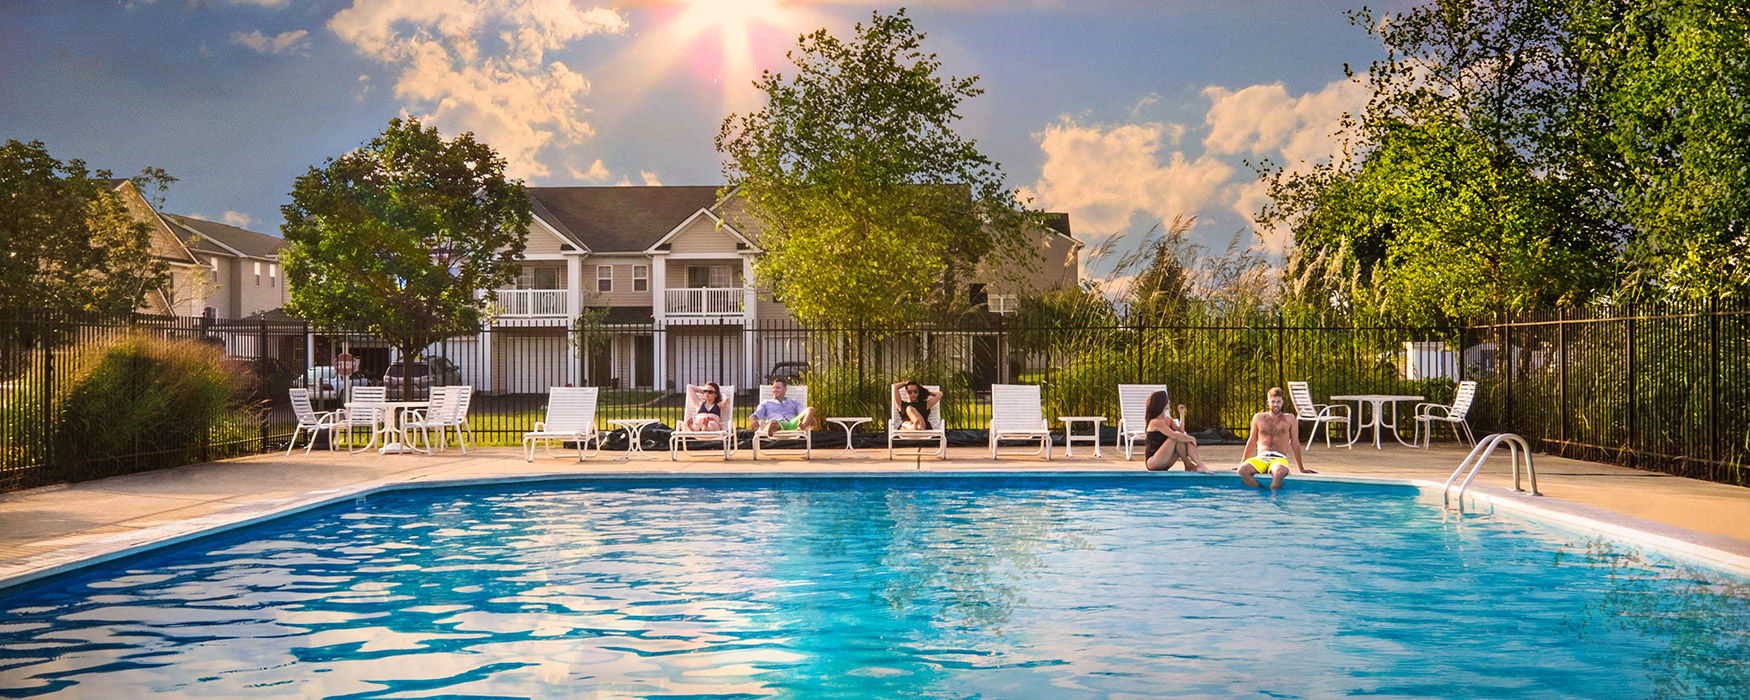 LC Sunbury Mills | Sunbury, OH | Lifestyle Communities